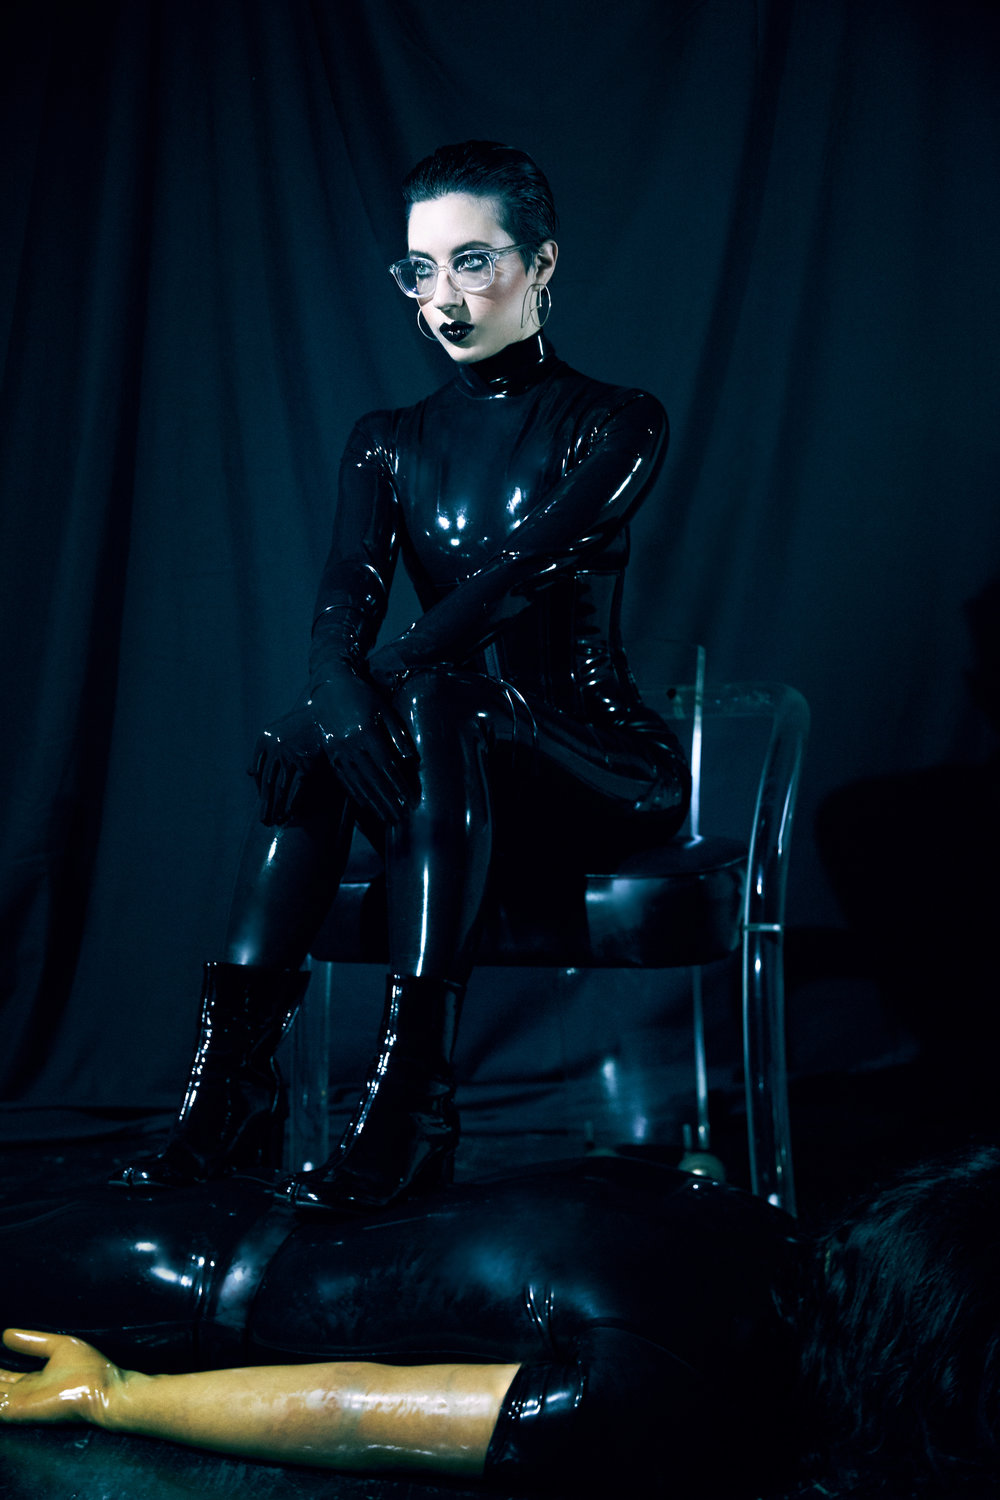 nyc-prodomme-mistrix-sade-lanee-bird-latex-dominatrix.jpg